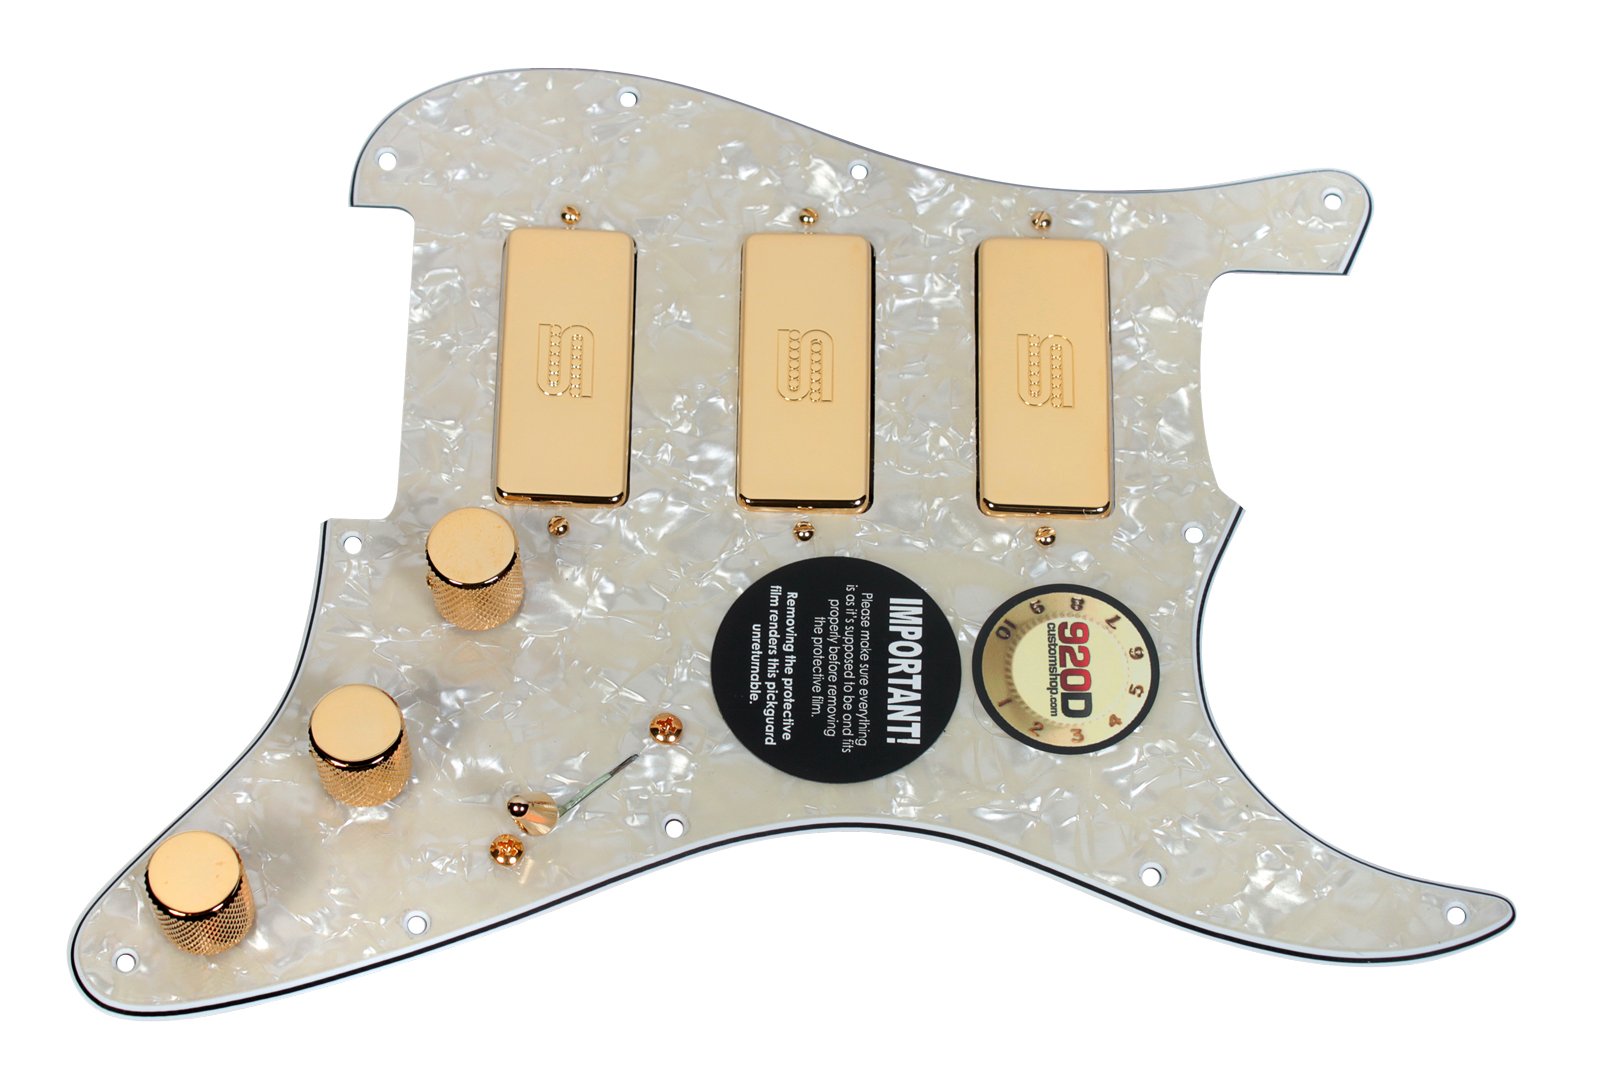 Cool Strat Mod Harmony Central Blend Control Options And Help Fender Stratocaster Guitar Forum